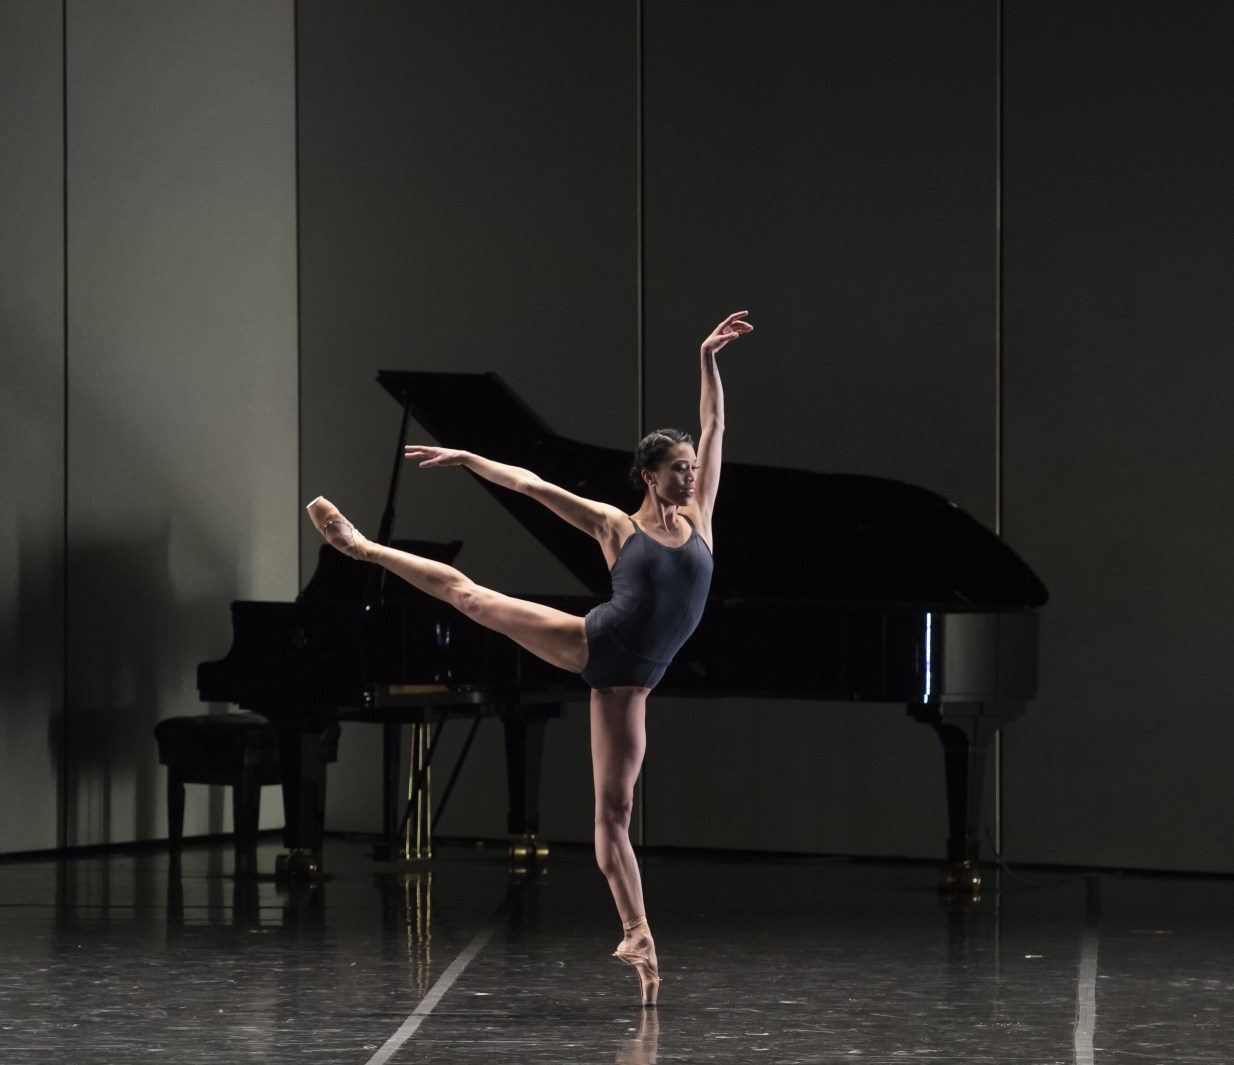 Lia Cirio of Boston Ballet in José Martinez's Resonance; photo by Gene Schiavone, courtesy Boston Ballet